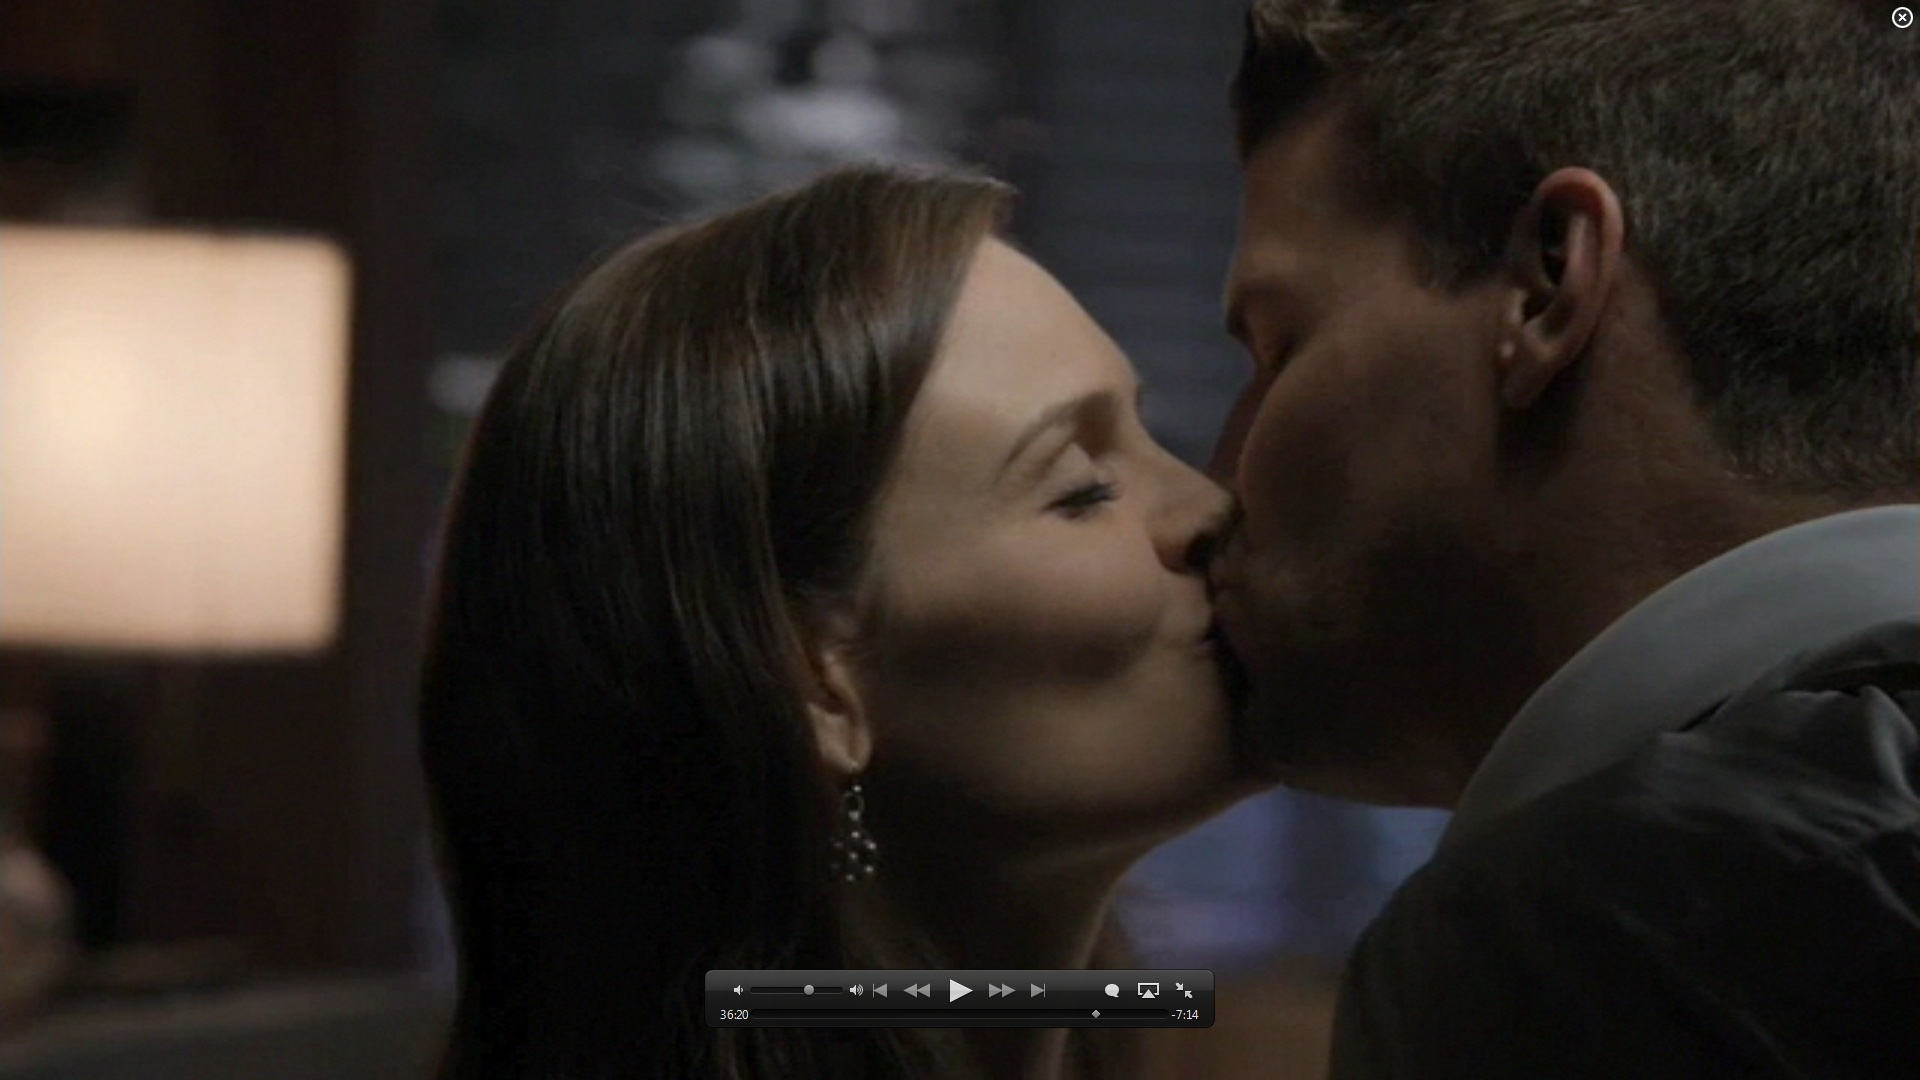 7x01 kiss booth and bones image 26582012 fanpop